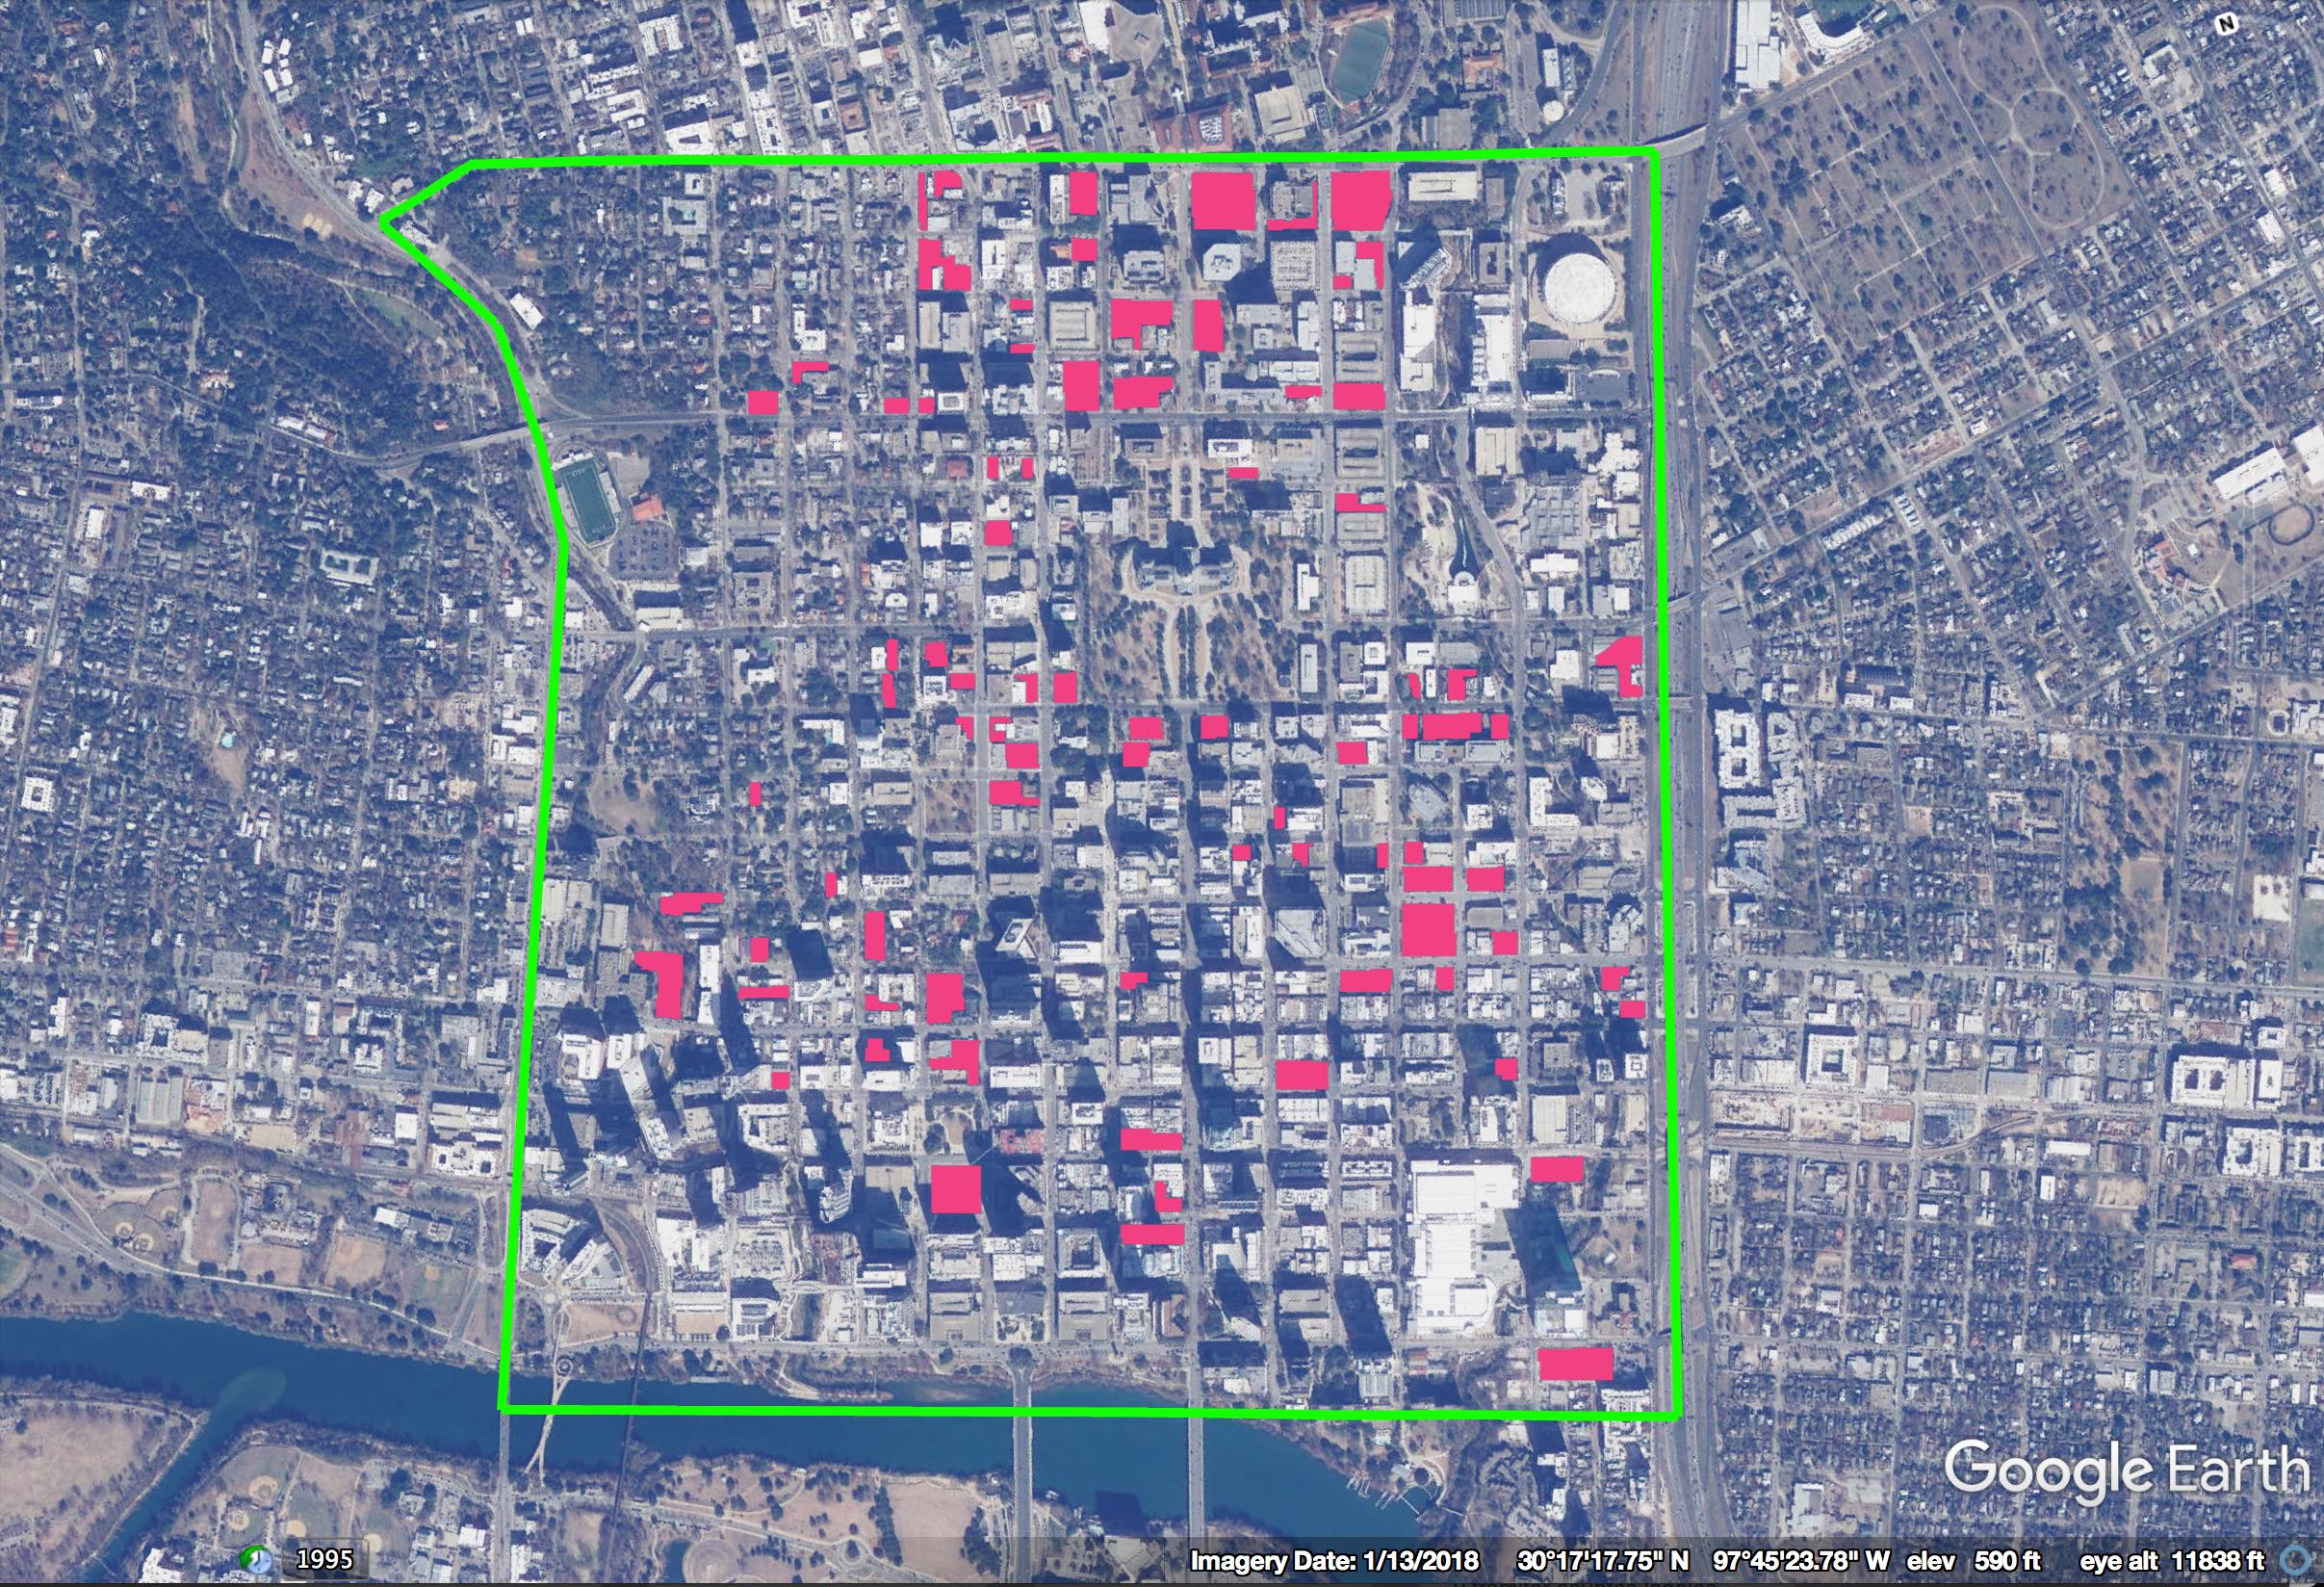 Figure 3: Surface parking lots in downtown Austin, TX. Click to view larger.